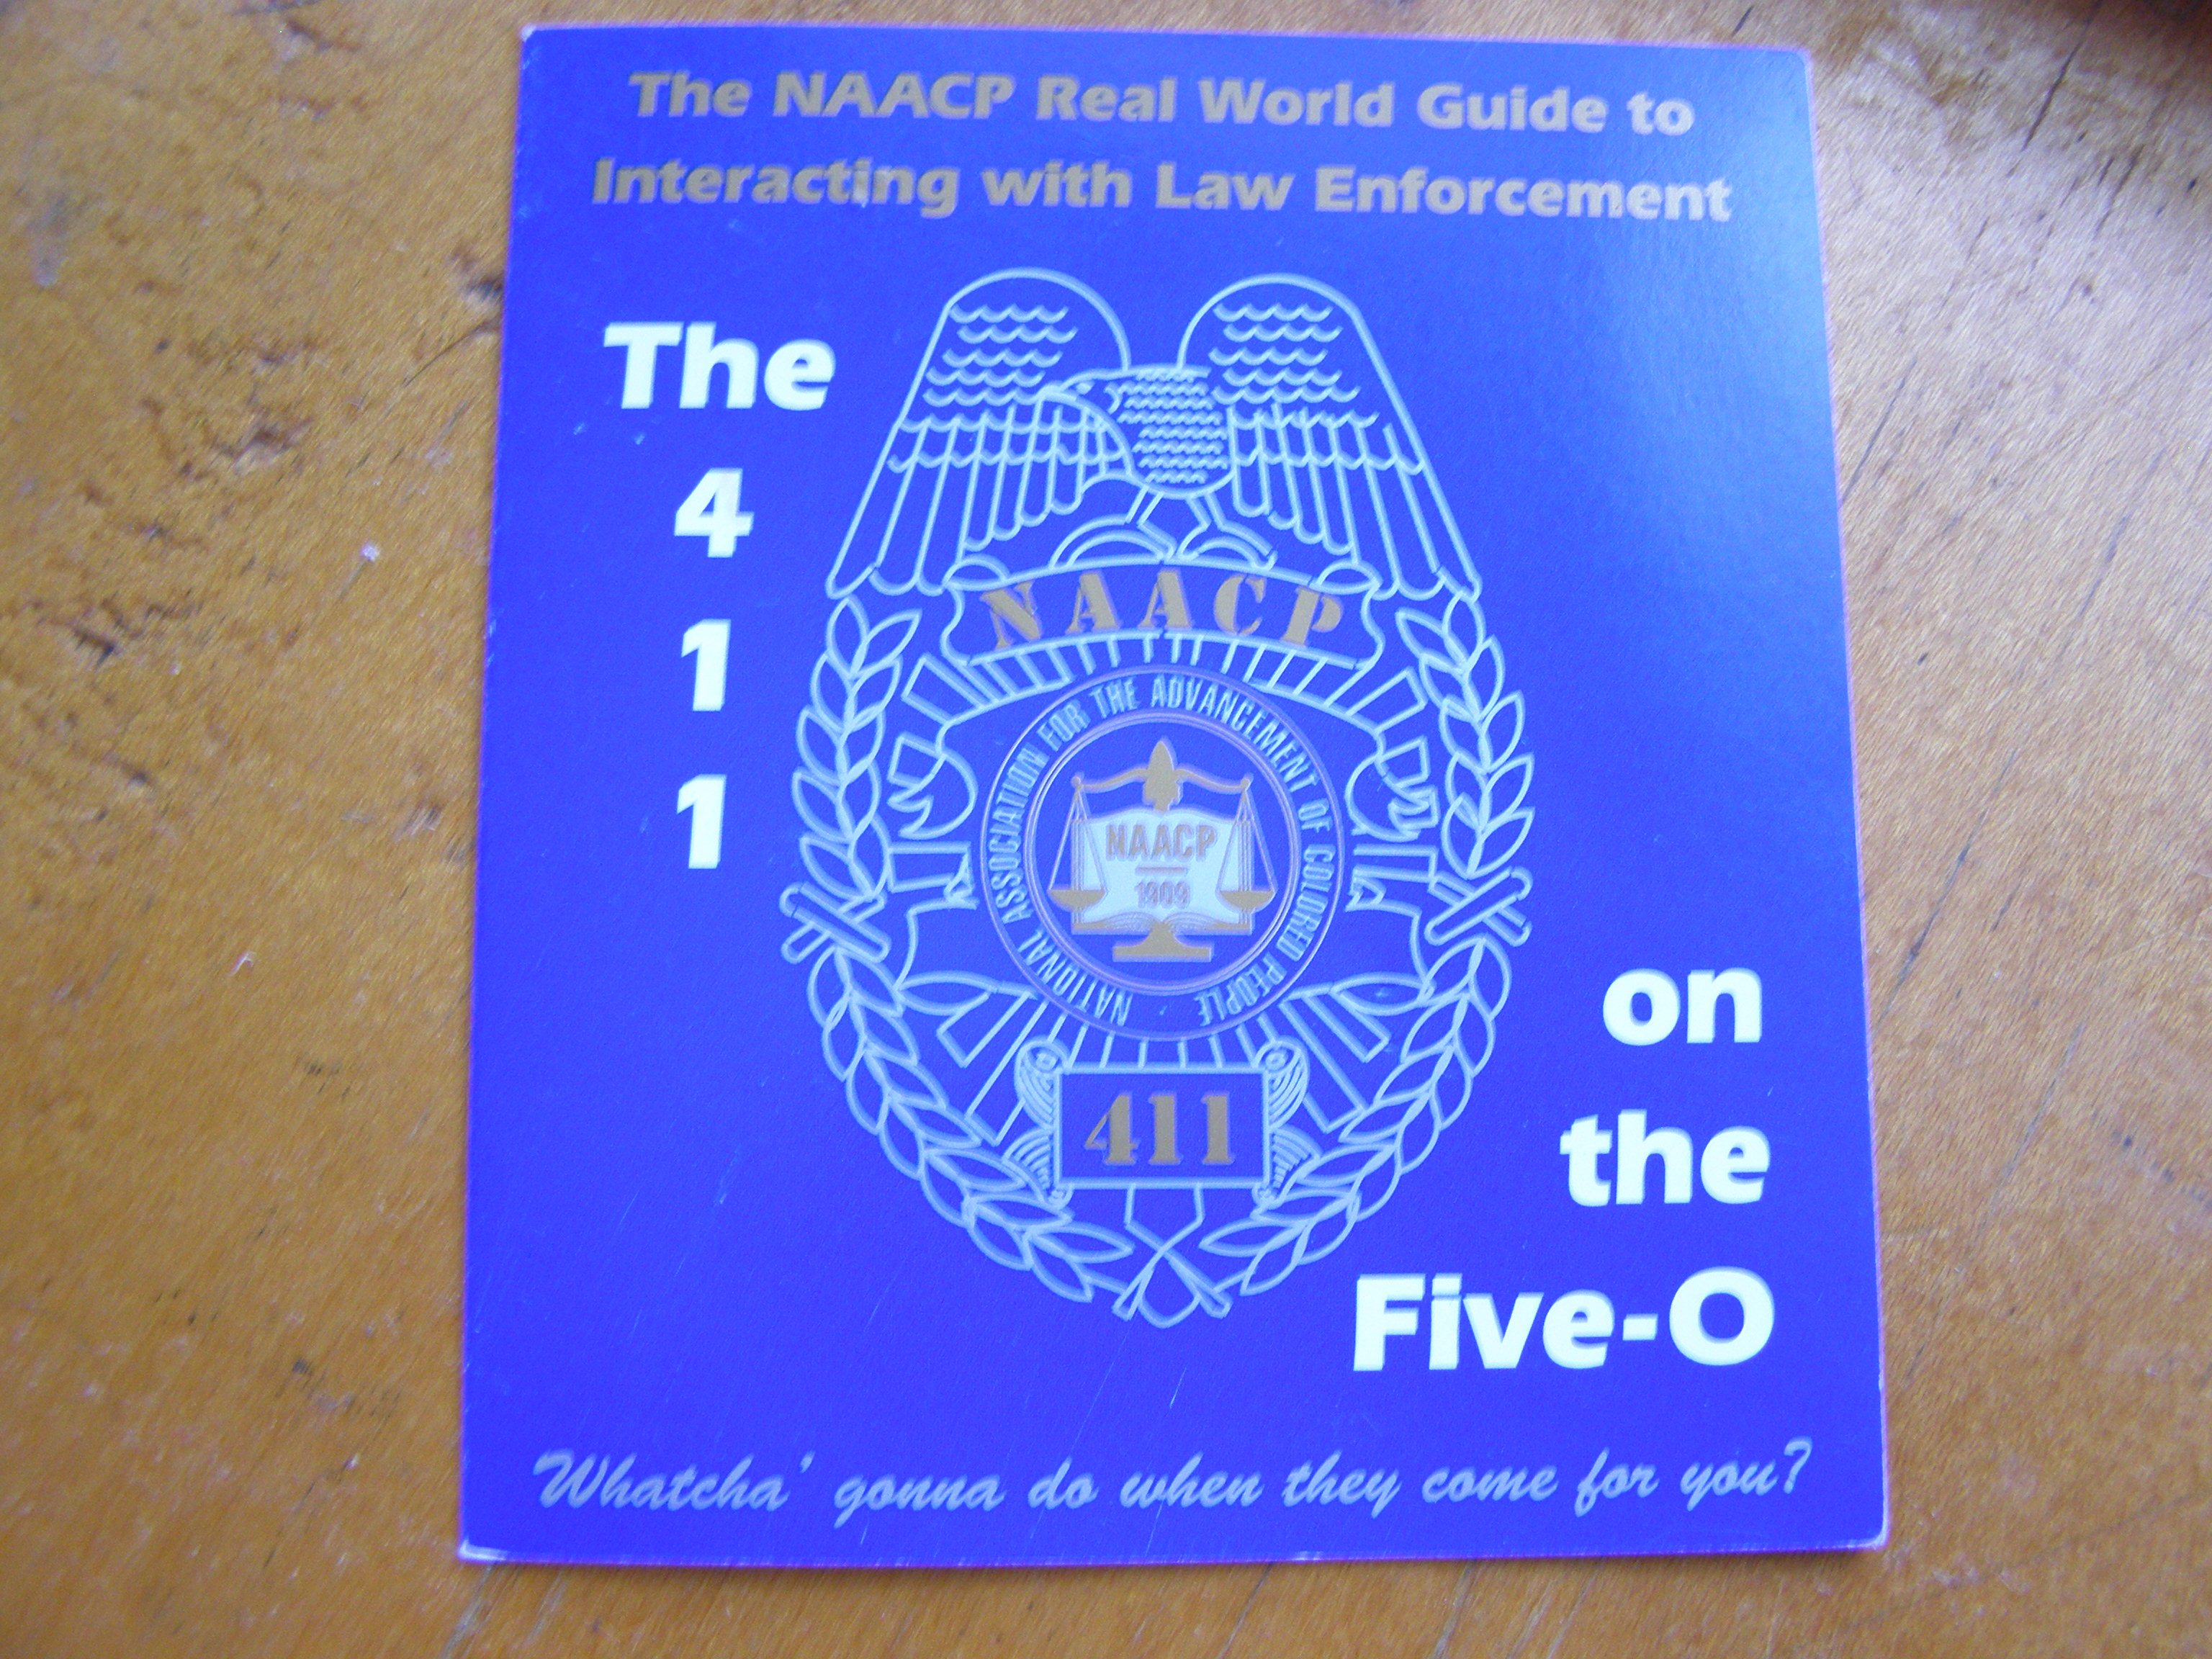 411 on the 5-0 pamphlet